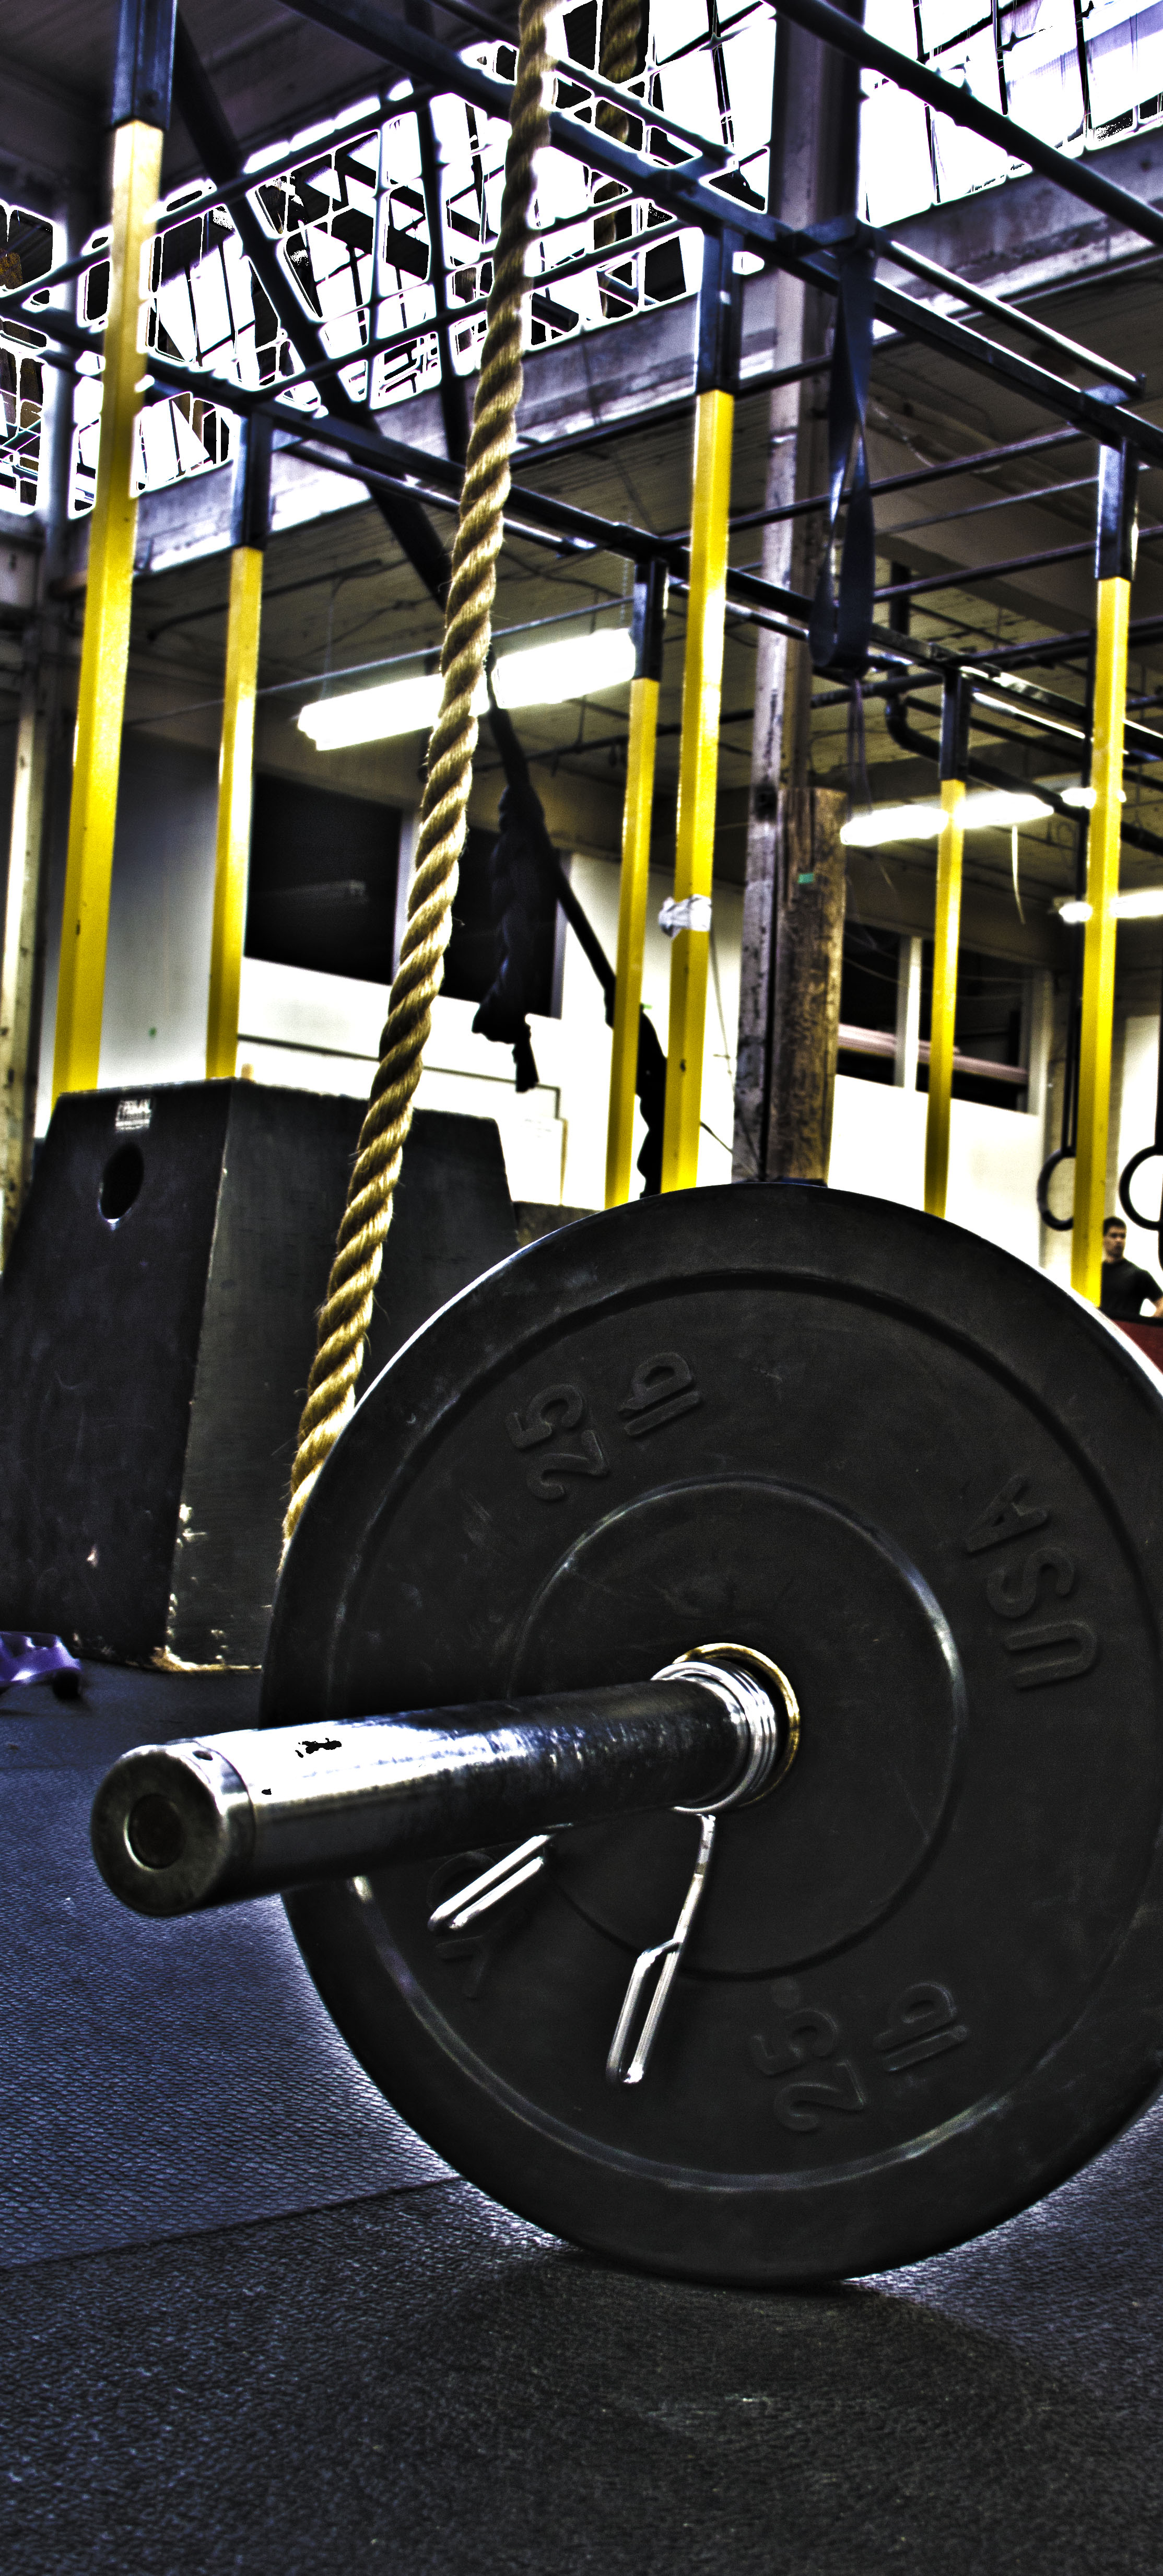 Barbell_HDR2